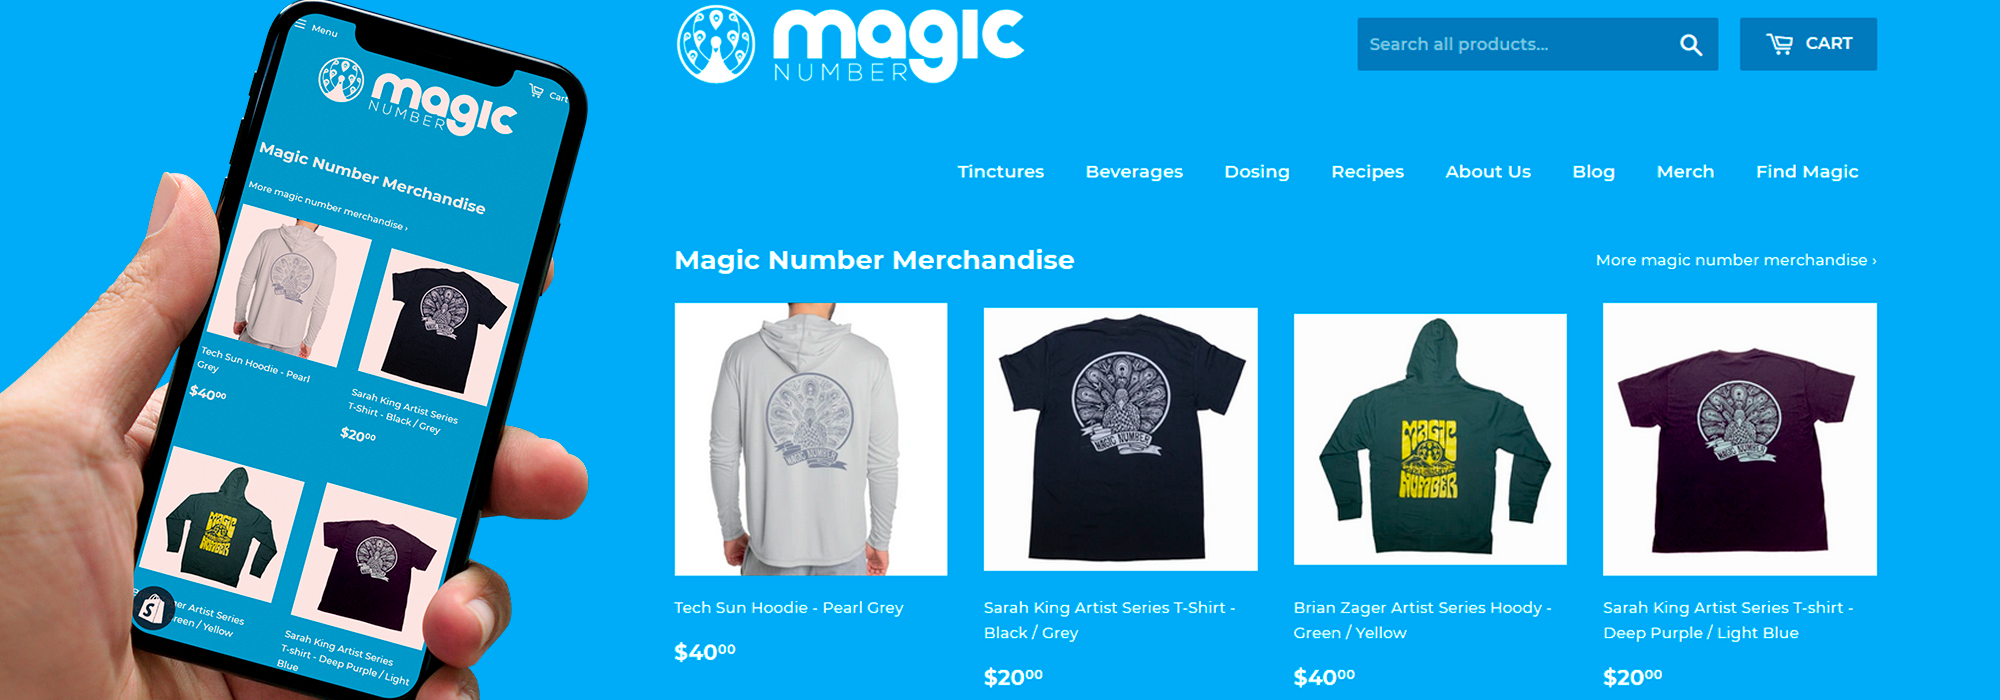 shopify e-comerce webstore for magic number merchandise